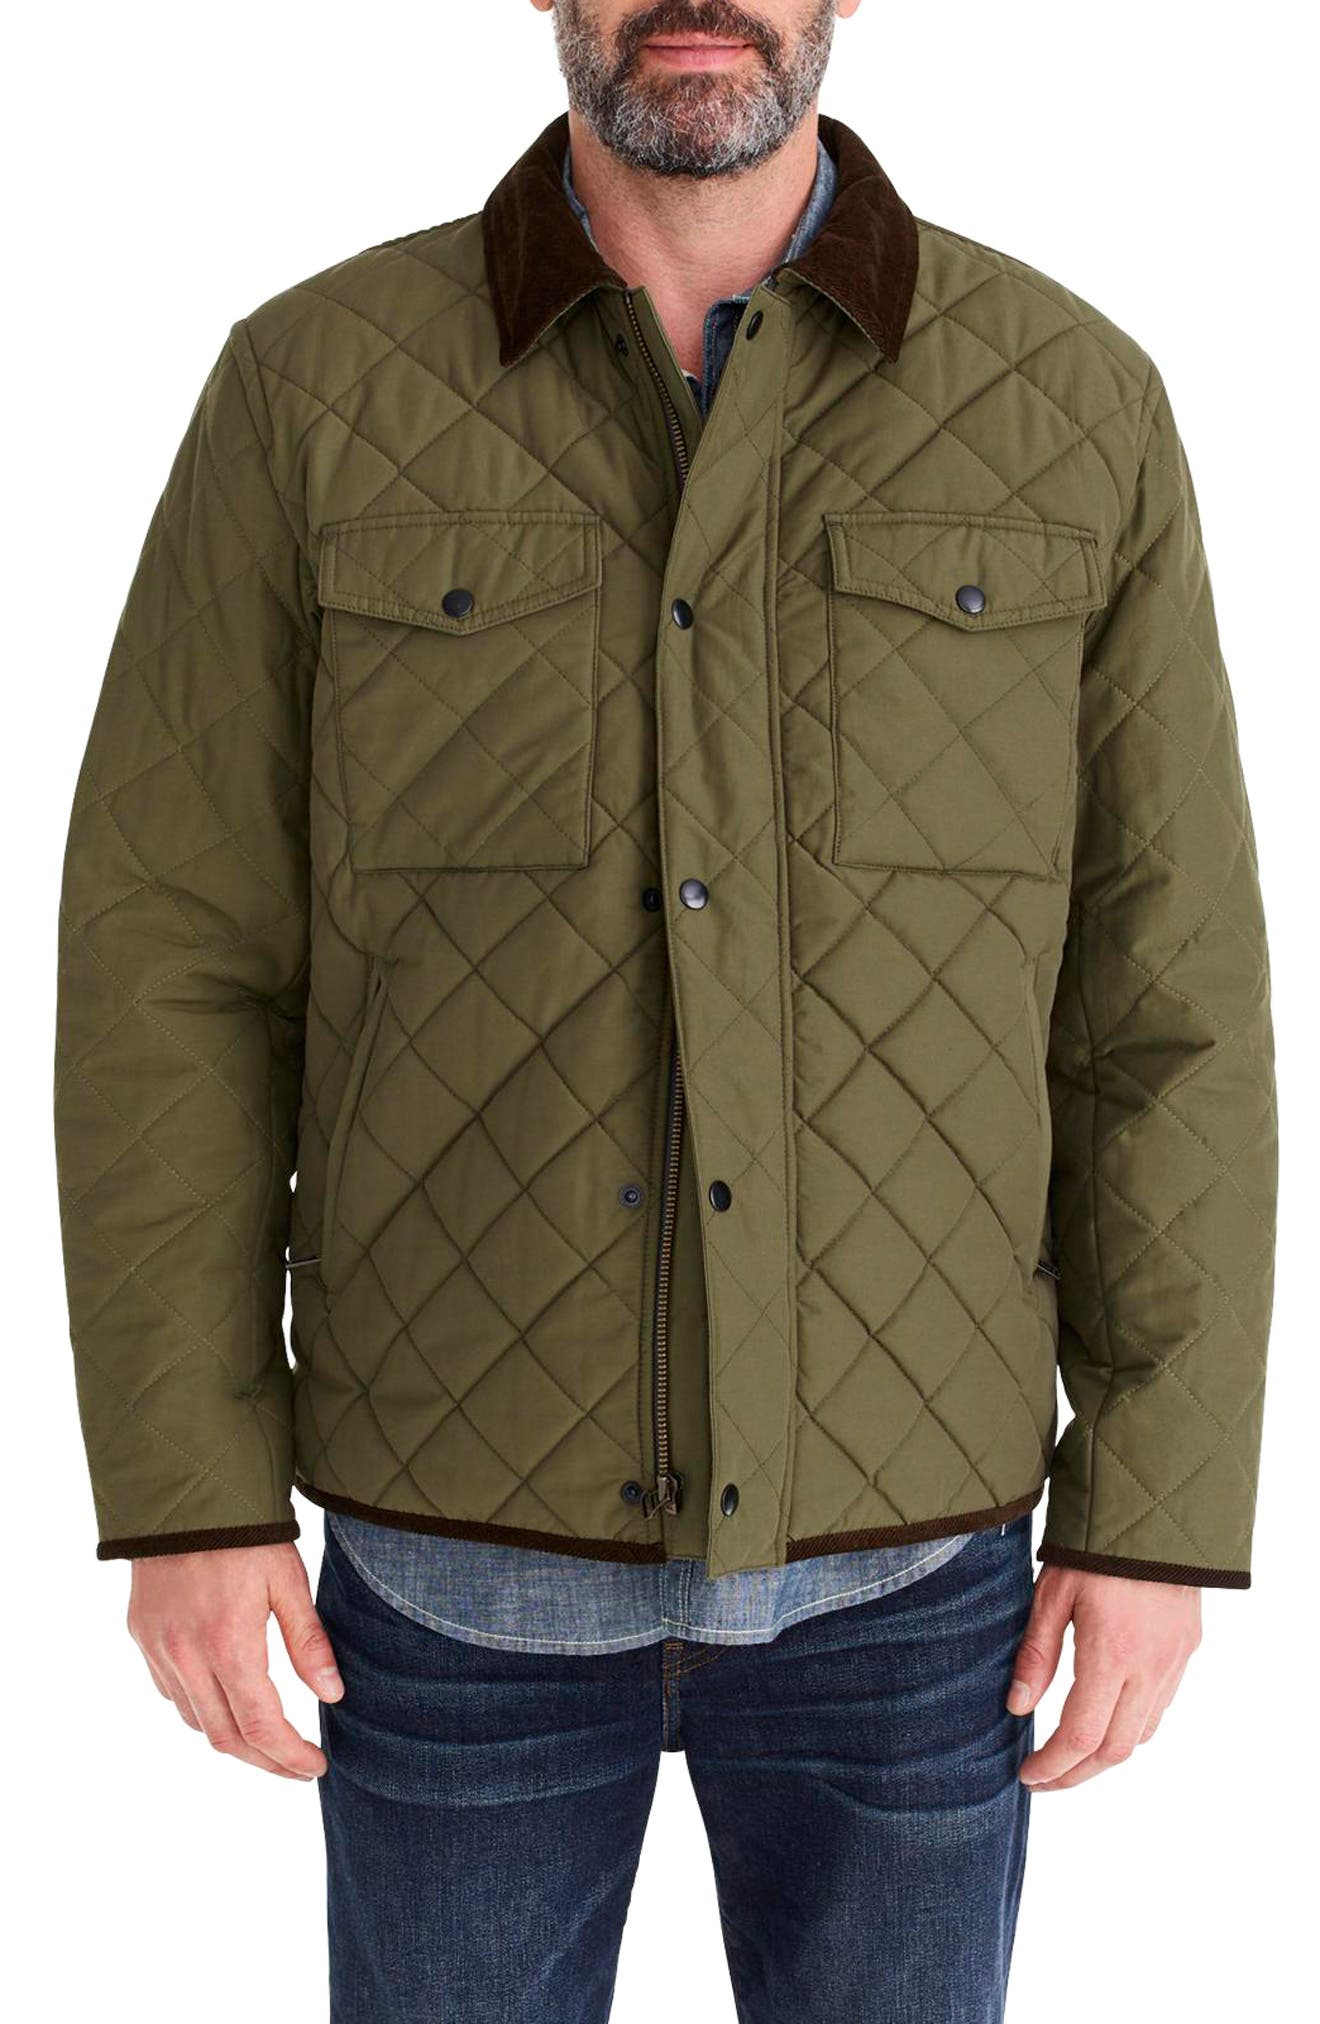 Sussex Quilted Jacket with Corduroy Collar,                             Main thumbnail 1, color,                             300